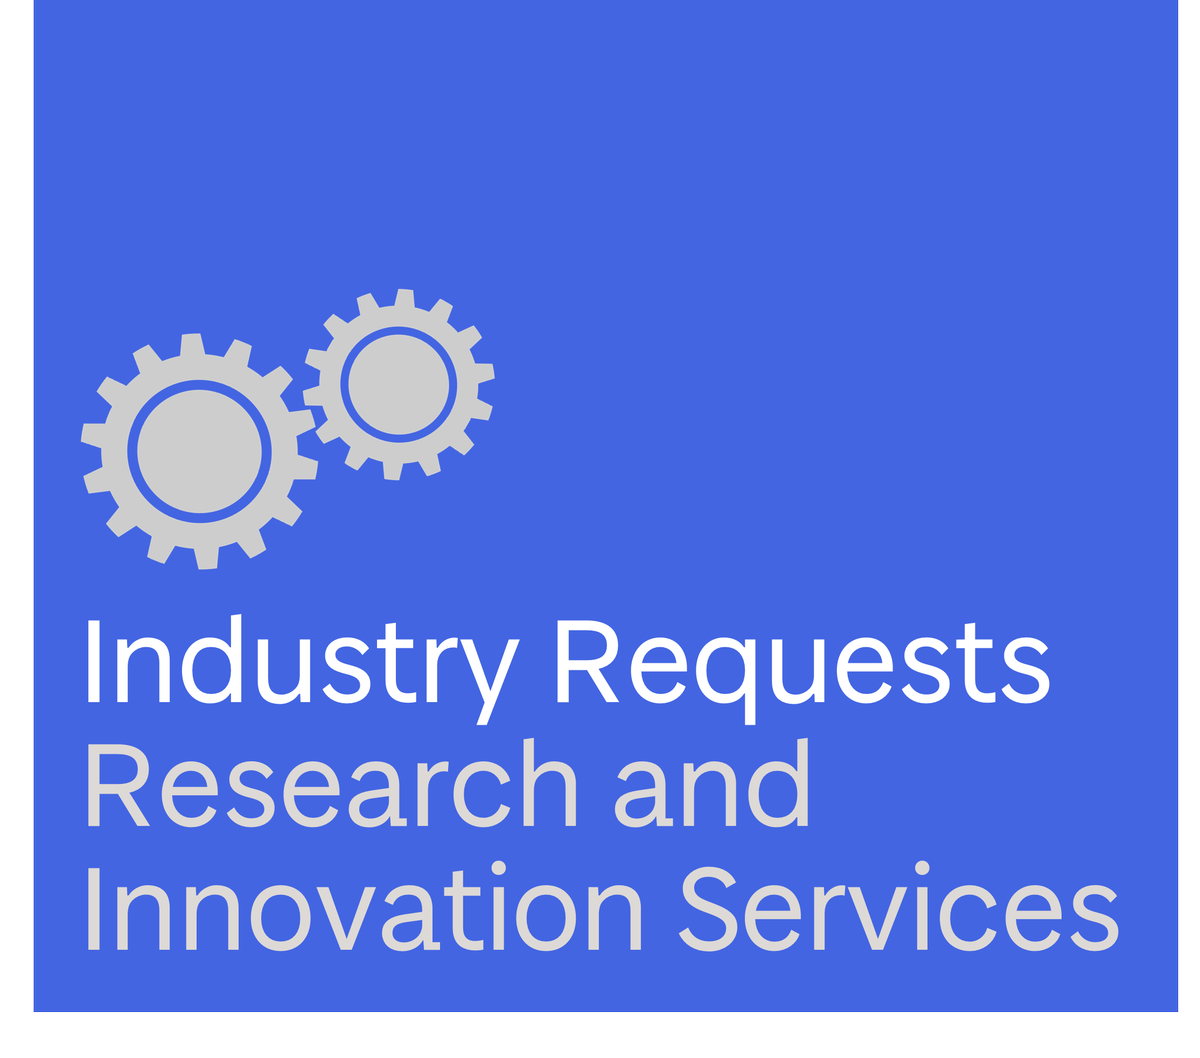 We&#39;ve updated our Live Industry Requests.  #UoDresearchers, take a look and get in touch!  http:// uod.ac.uk/2u9VIhq  &nbsp;   #mostinnovative <br>http://pic.twitter.com/bphujPPZnp